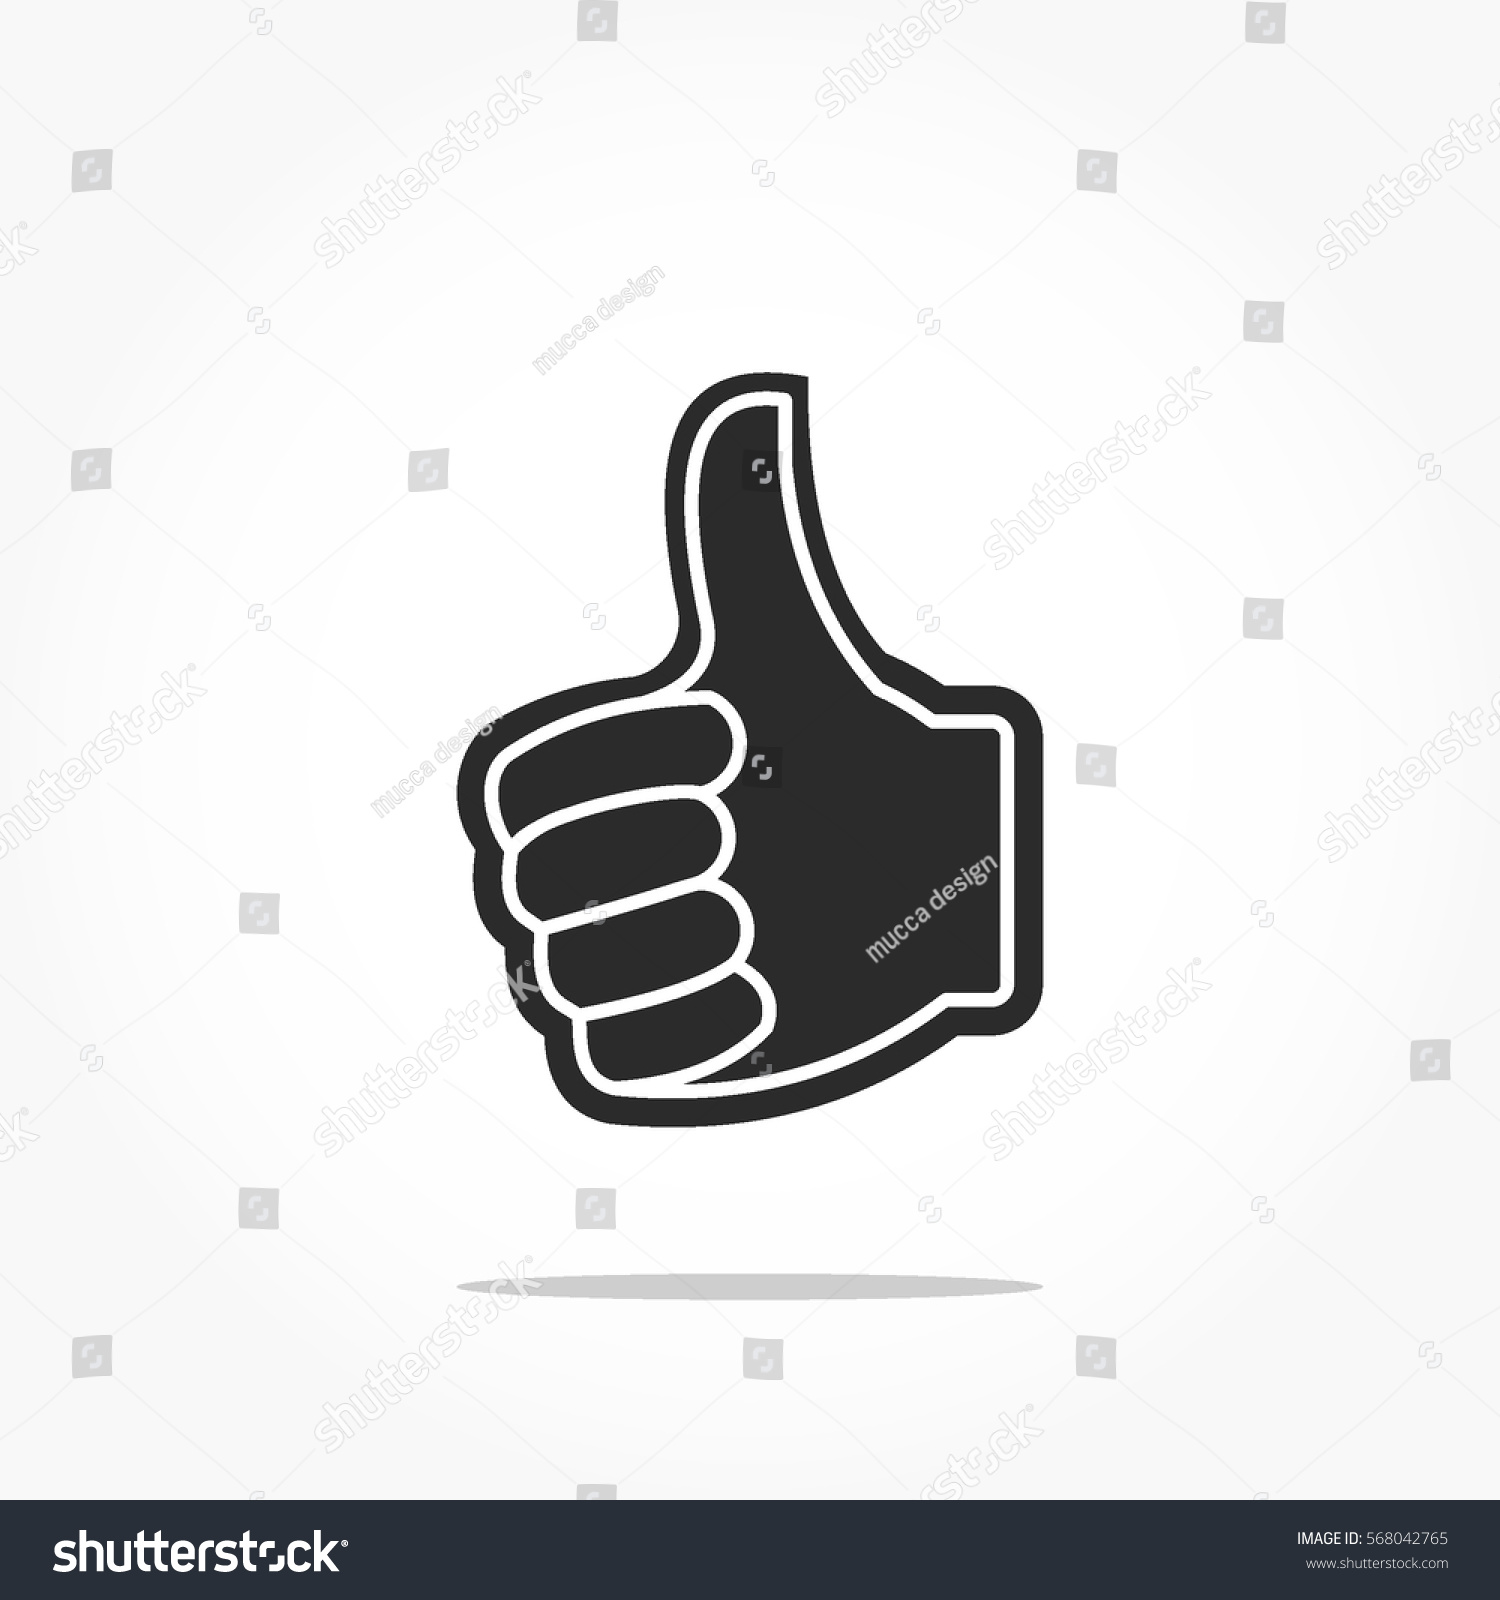 Hands Icon Thumb Symbol Hand Gestures Stock Vector Royalty Free